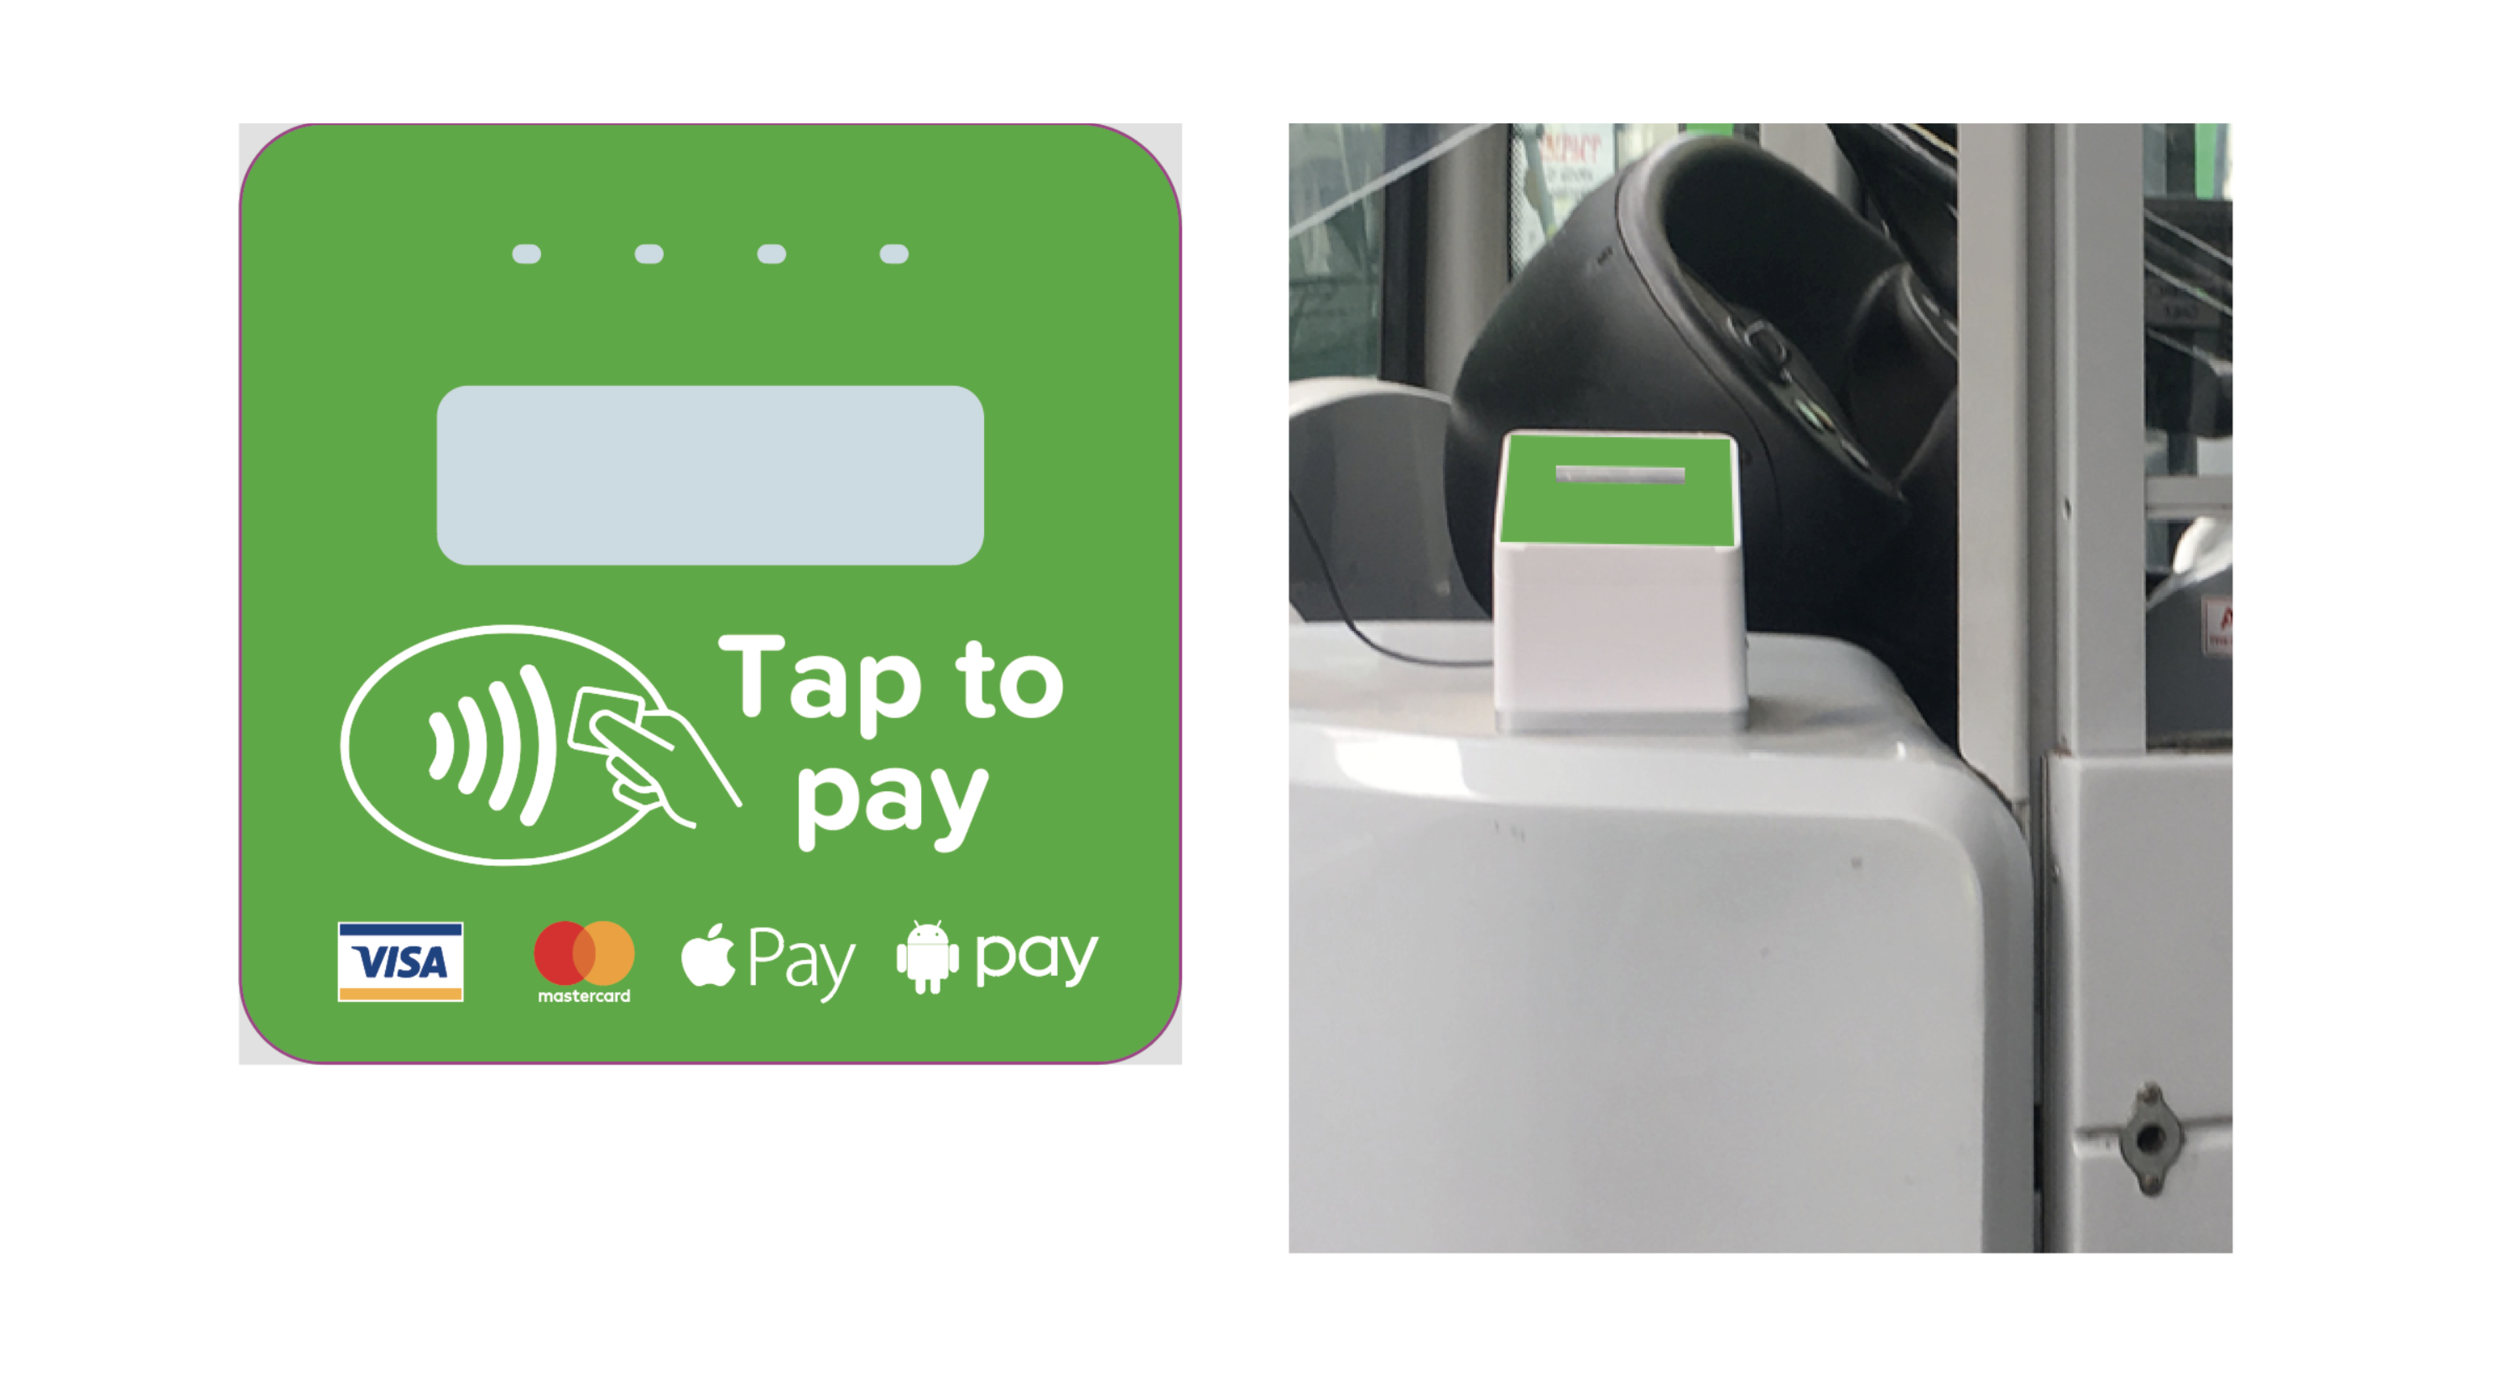 Transit payment communications and touch points are critical in passenger flow dynamics